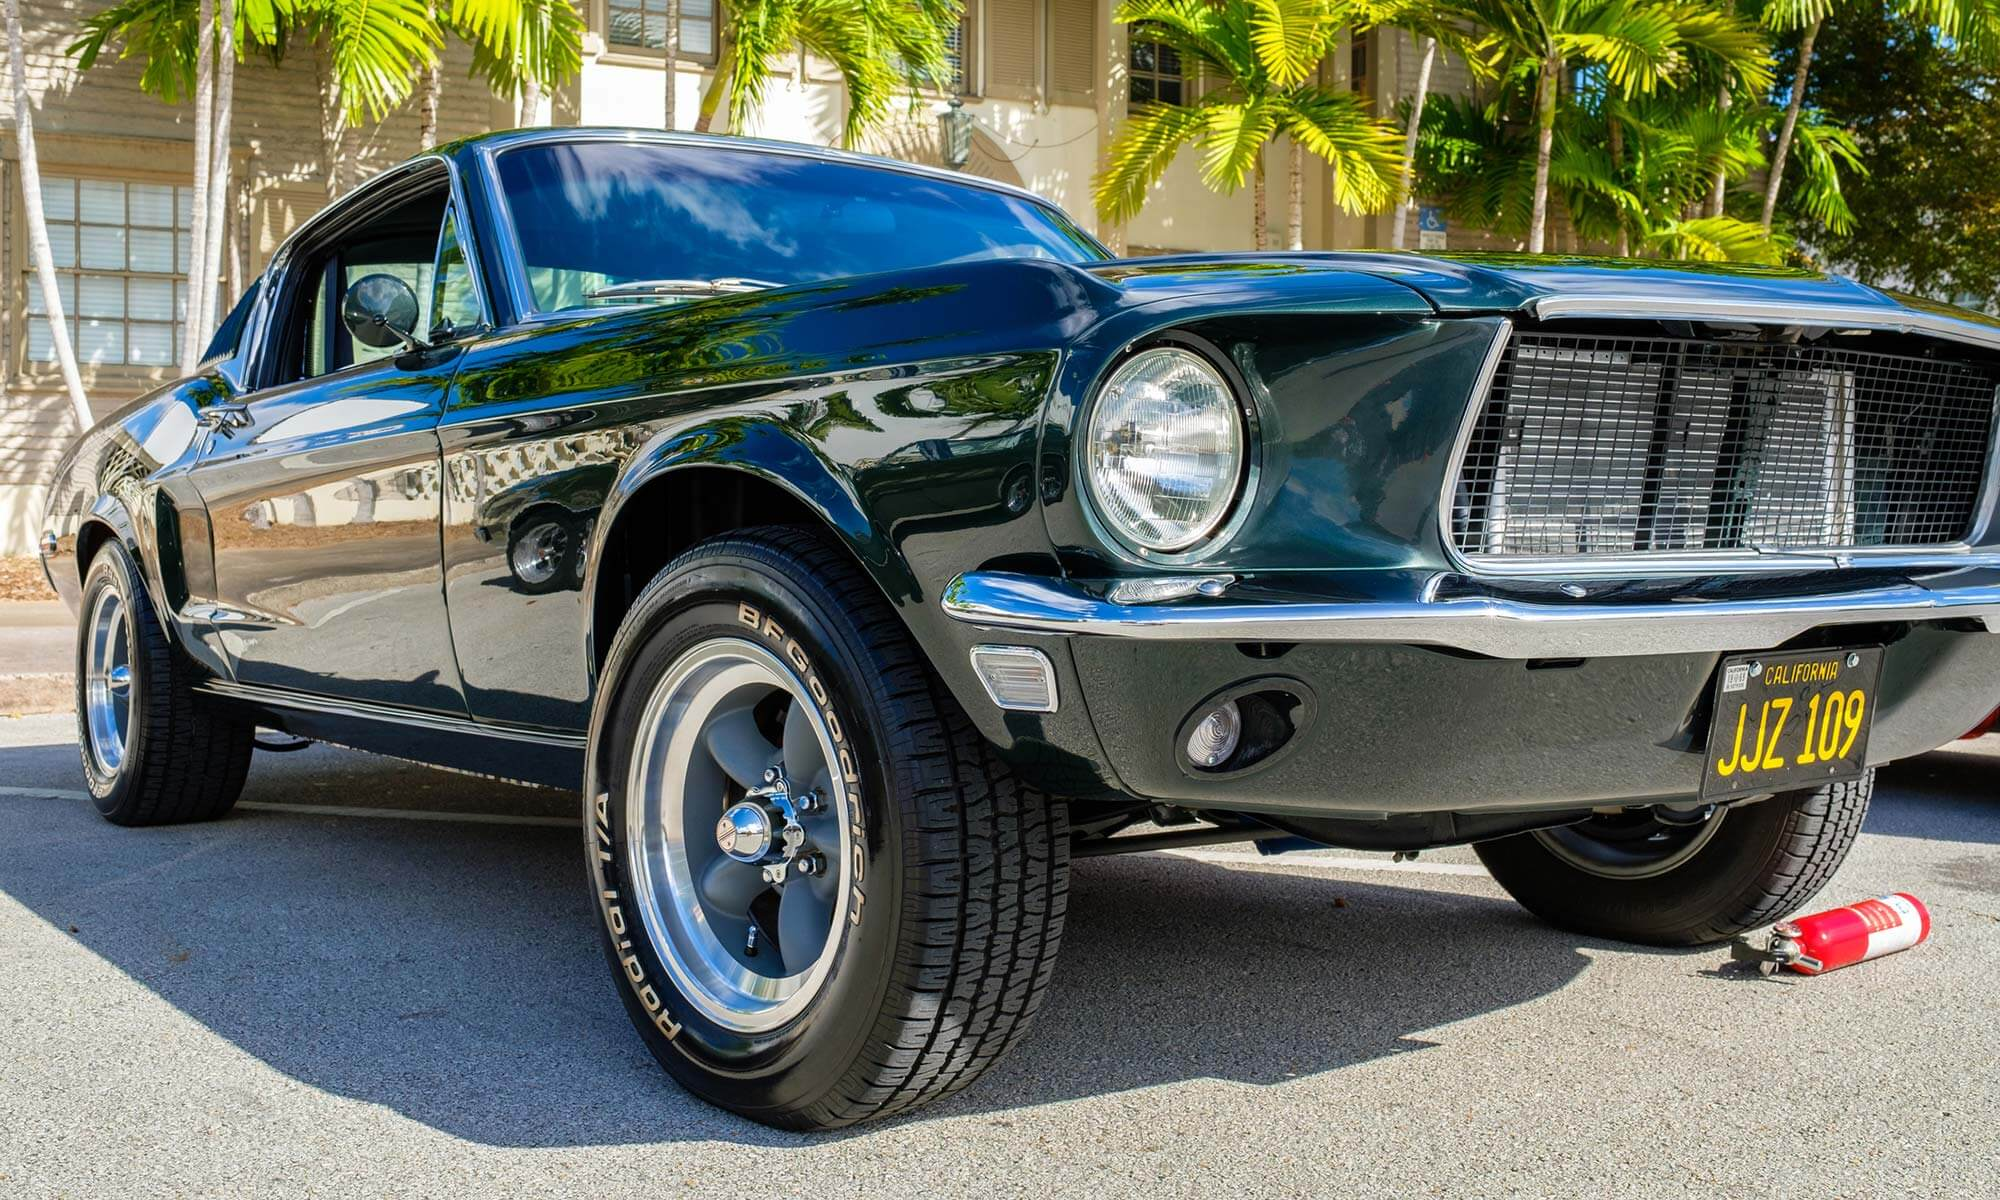 A close-up image of a vintage Ford Mustang.